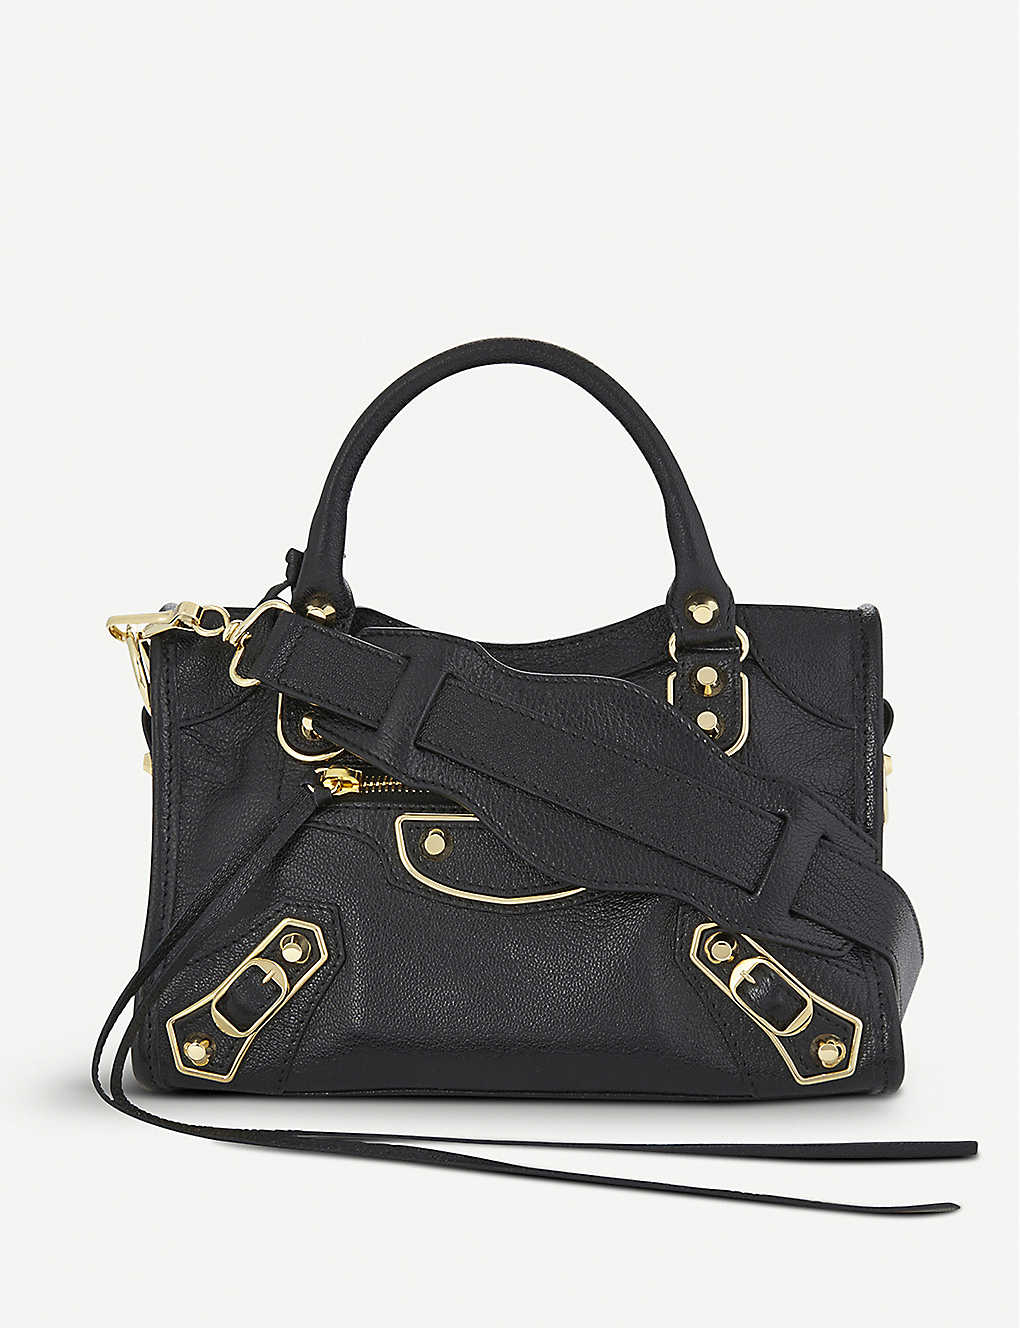 cc563f236d BALENCIAGA - Metallic Edge City mini leather shoulder bag ...